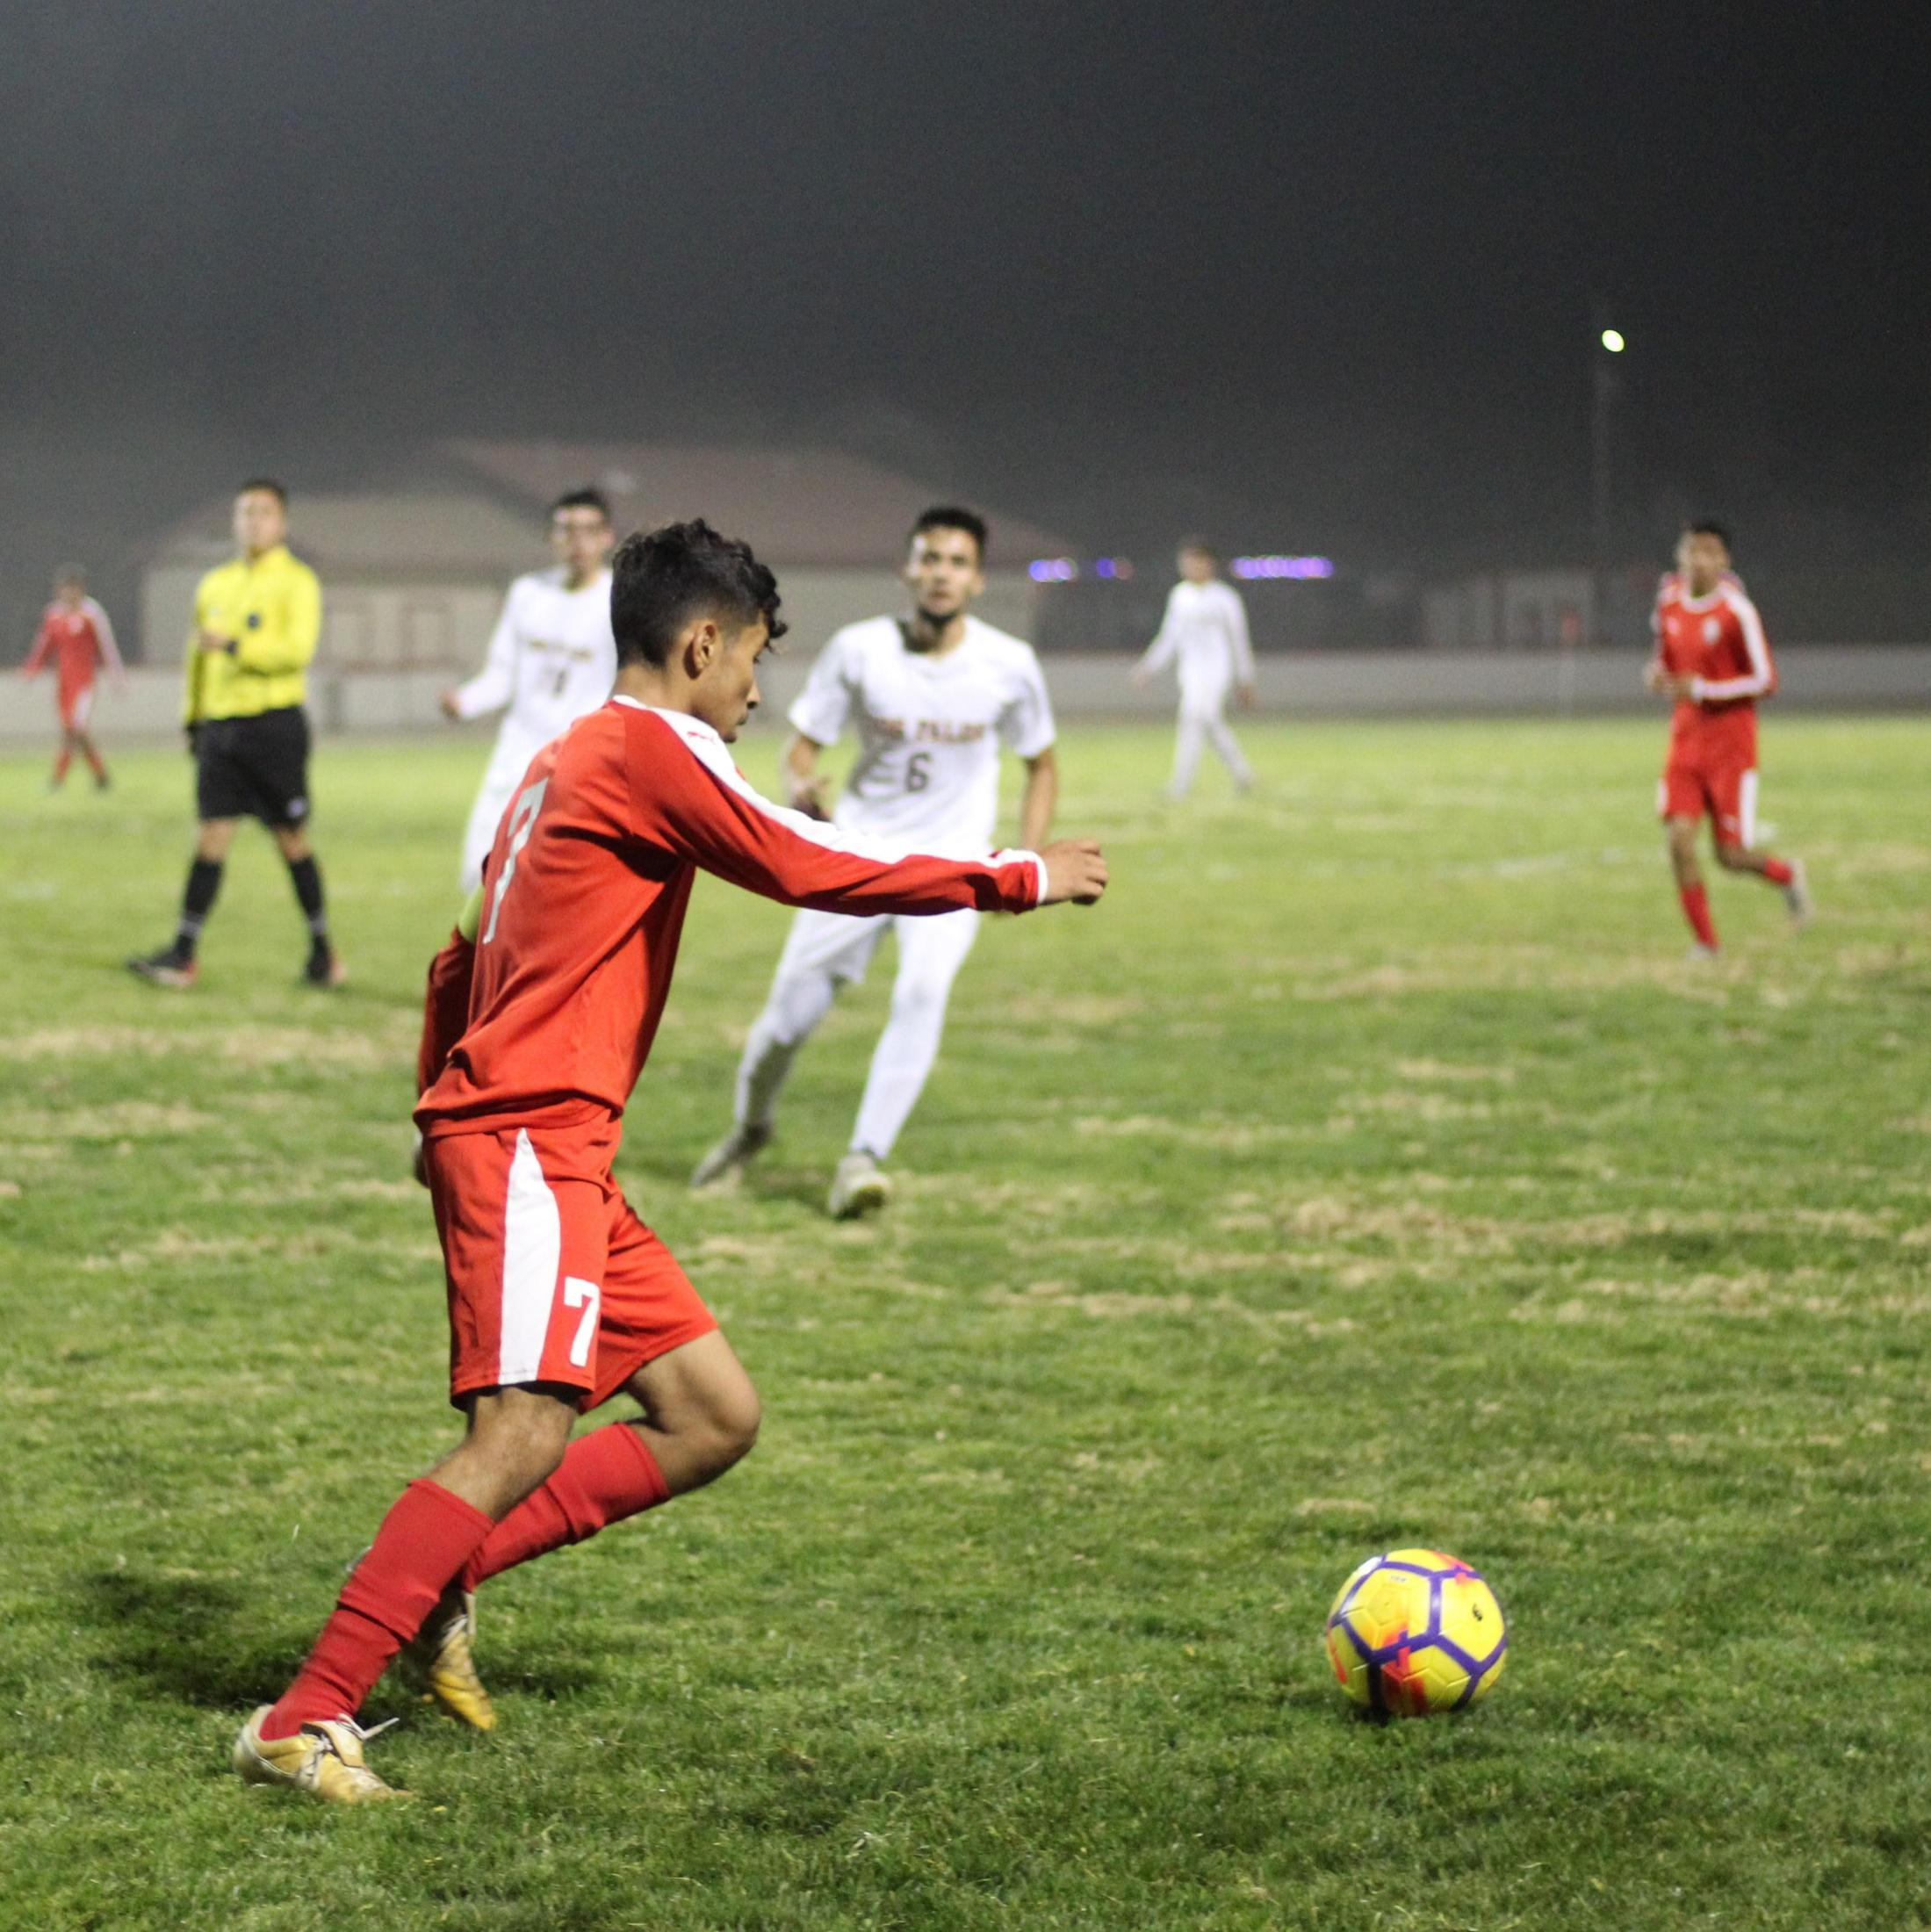 Luis Reyes going for the ball